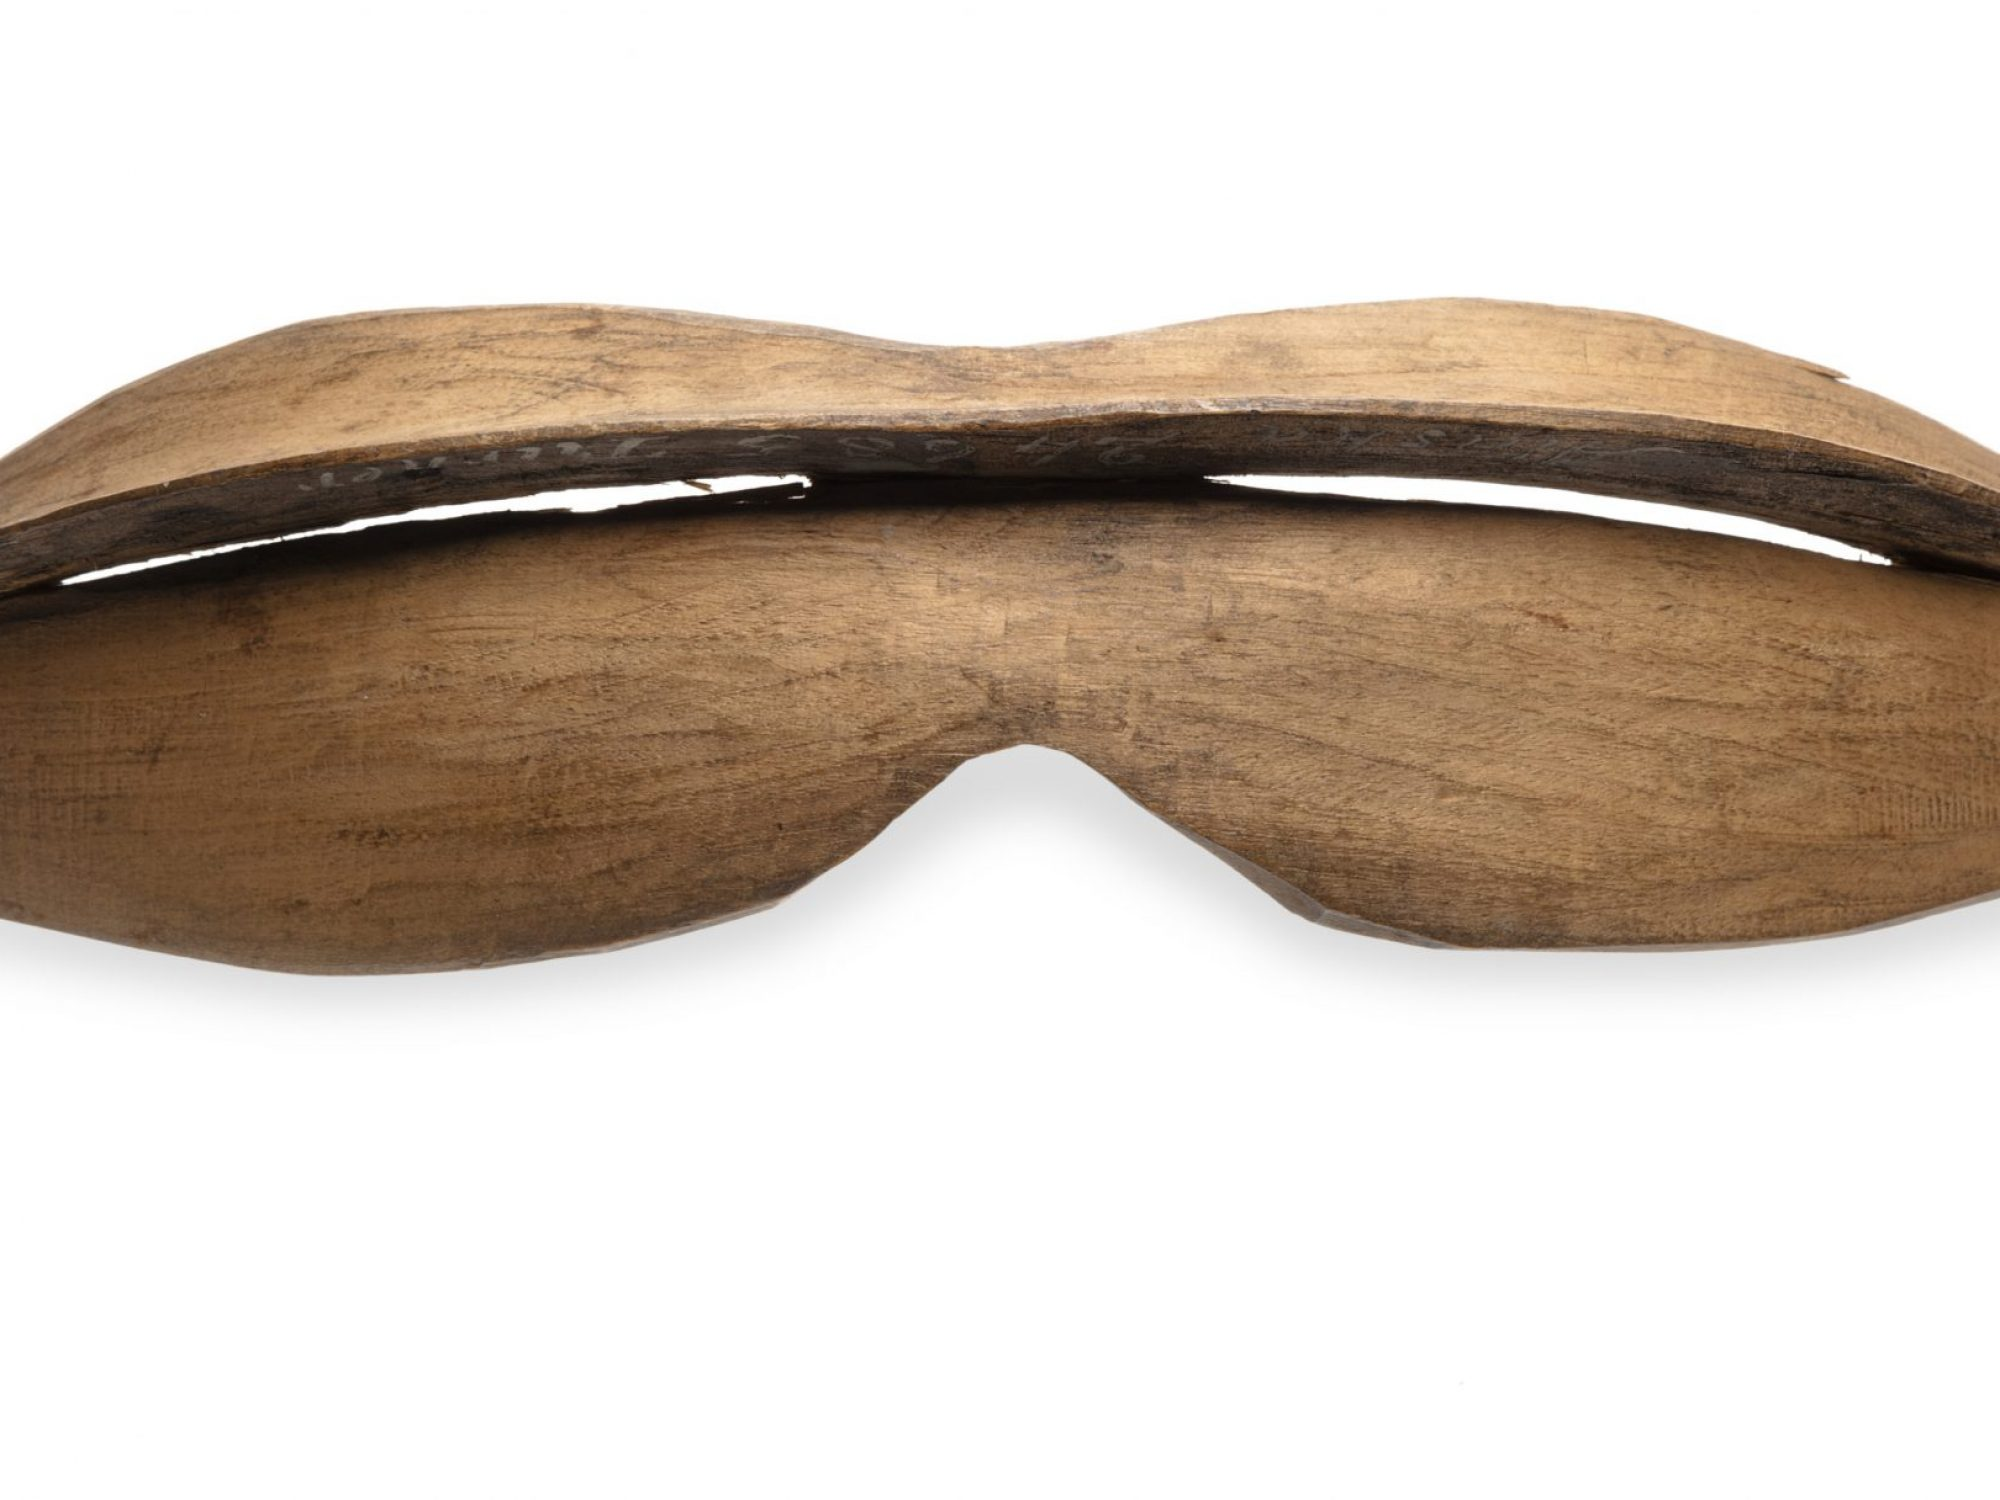 Wooden snow googles, shaped like bean pod with slit in middle for visibility